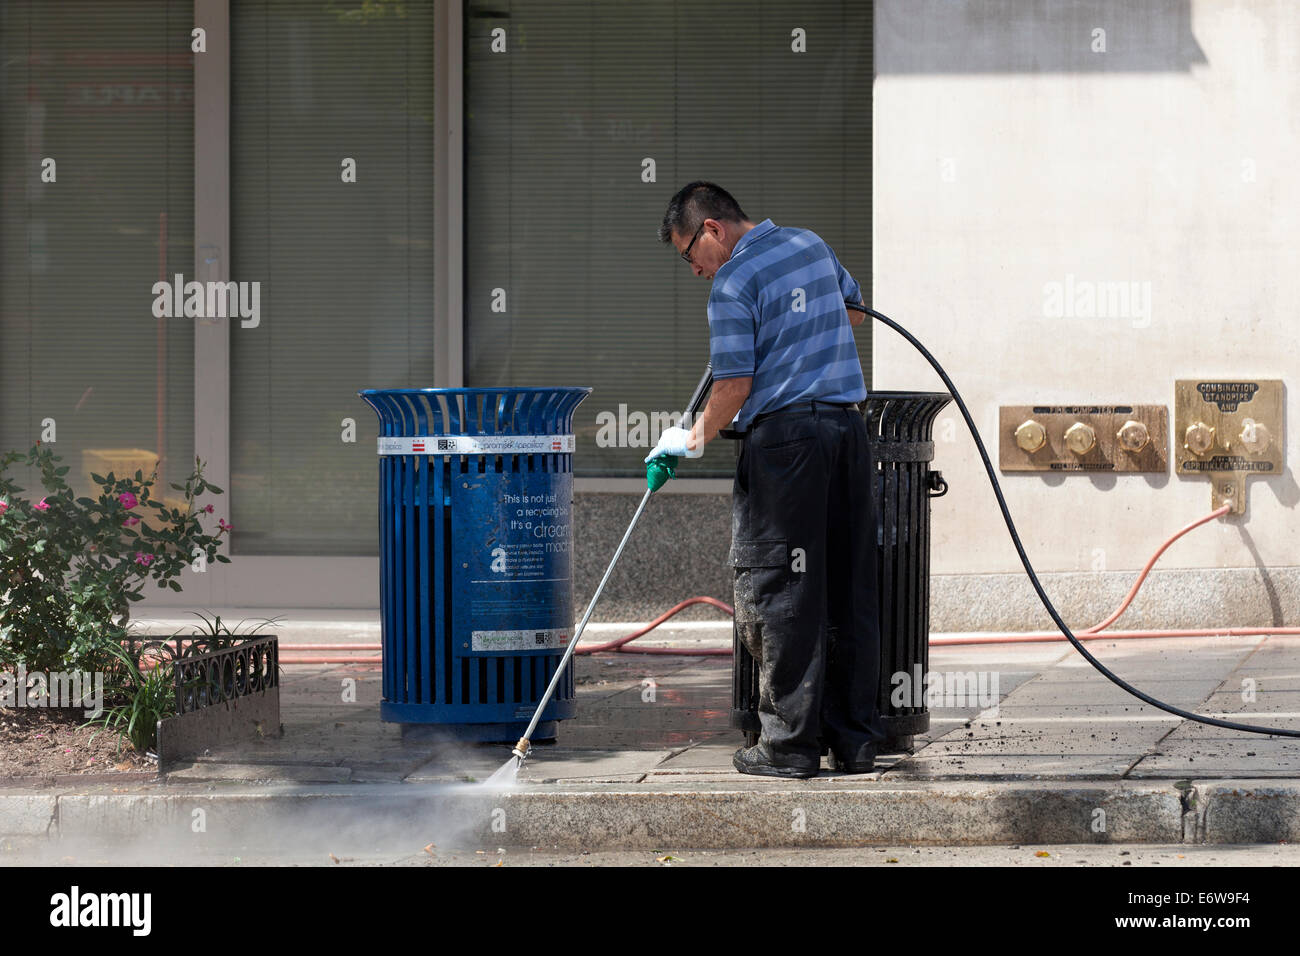 Man pressure washing sidewalk - USA - Stock Image